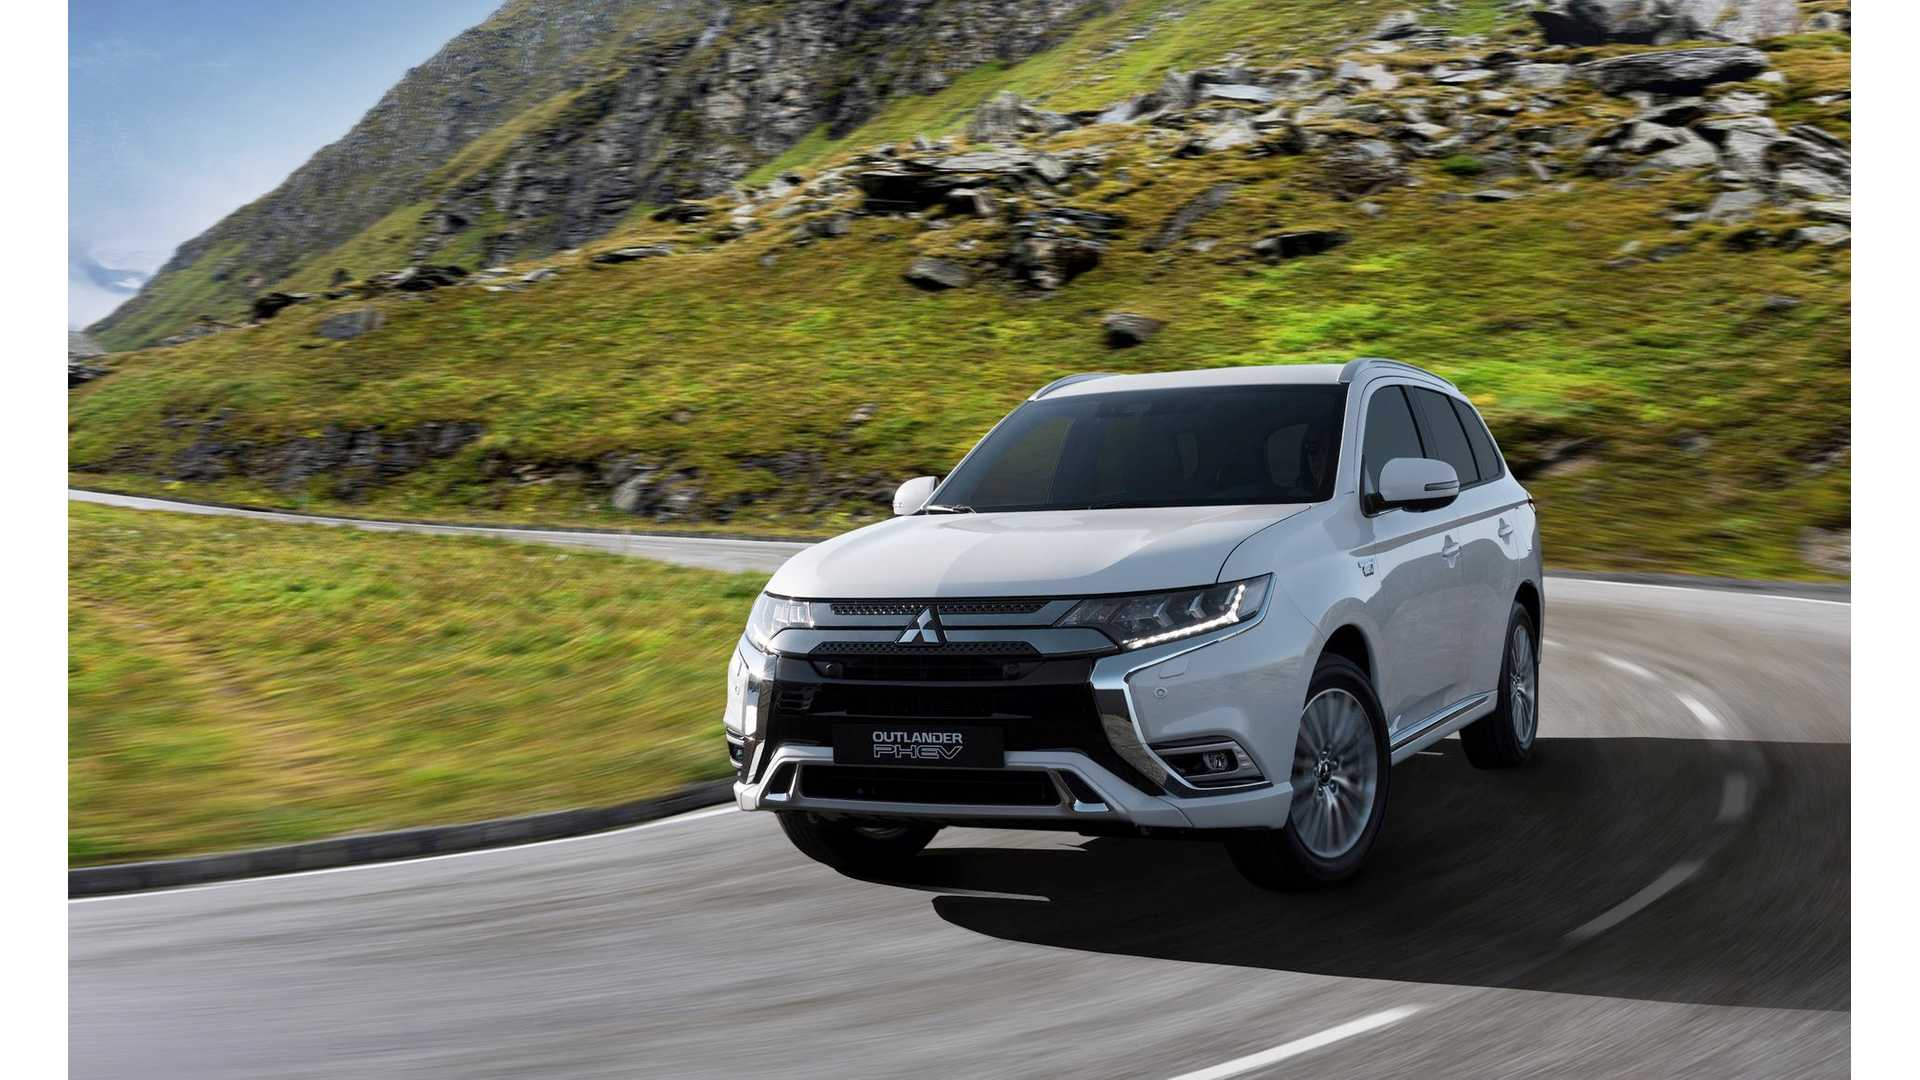 61 The 2020 Mitsubishi Outlander Phev Range Configurations